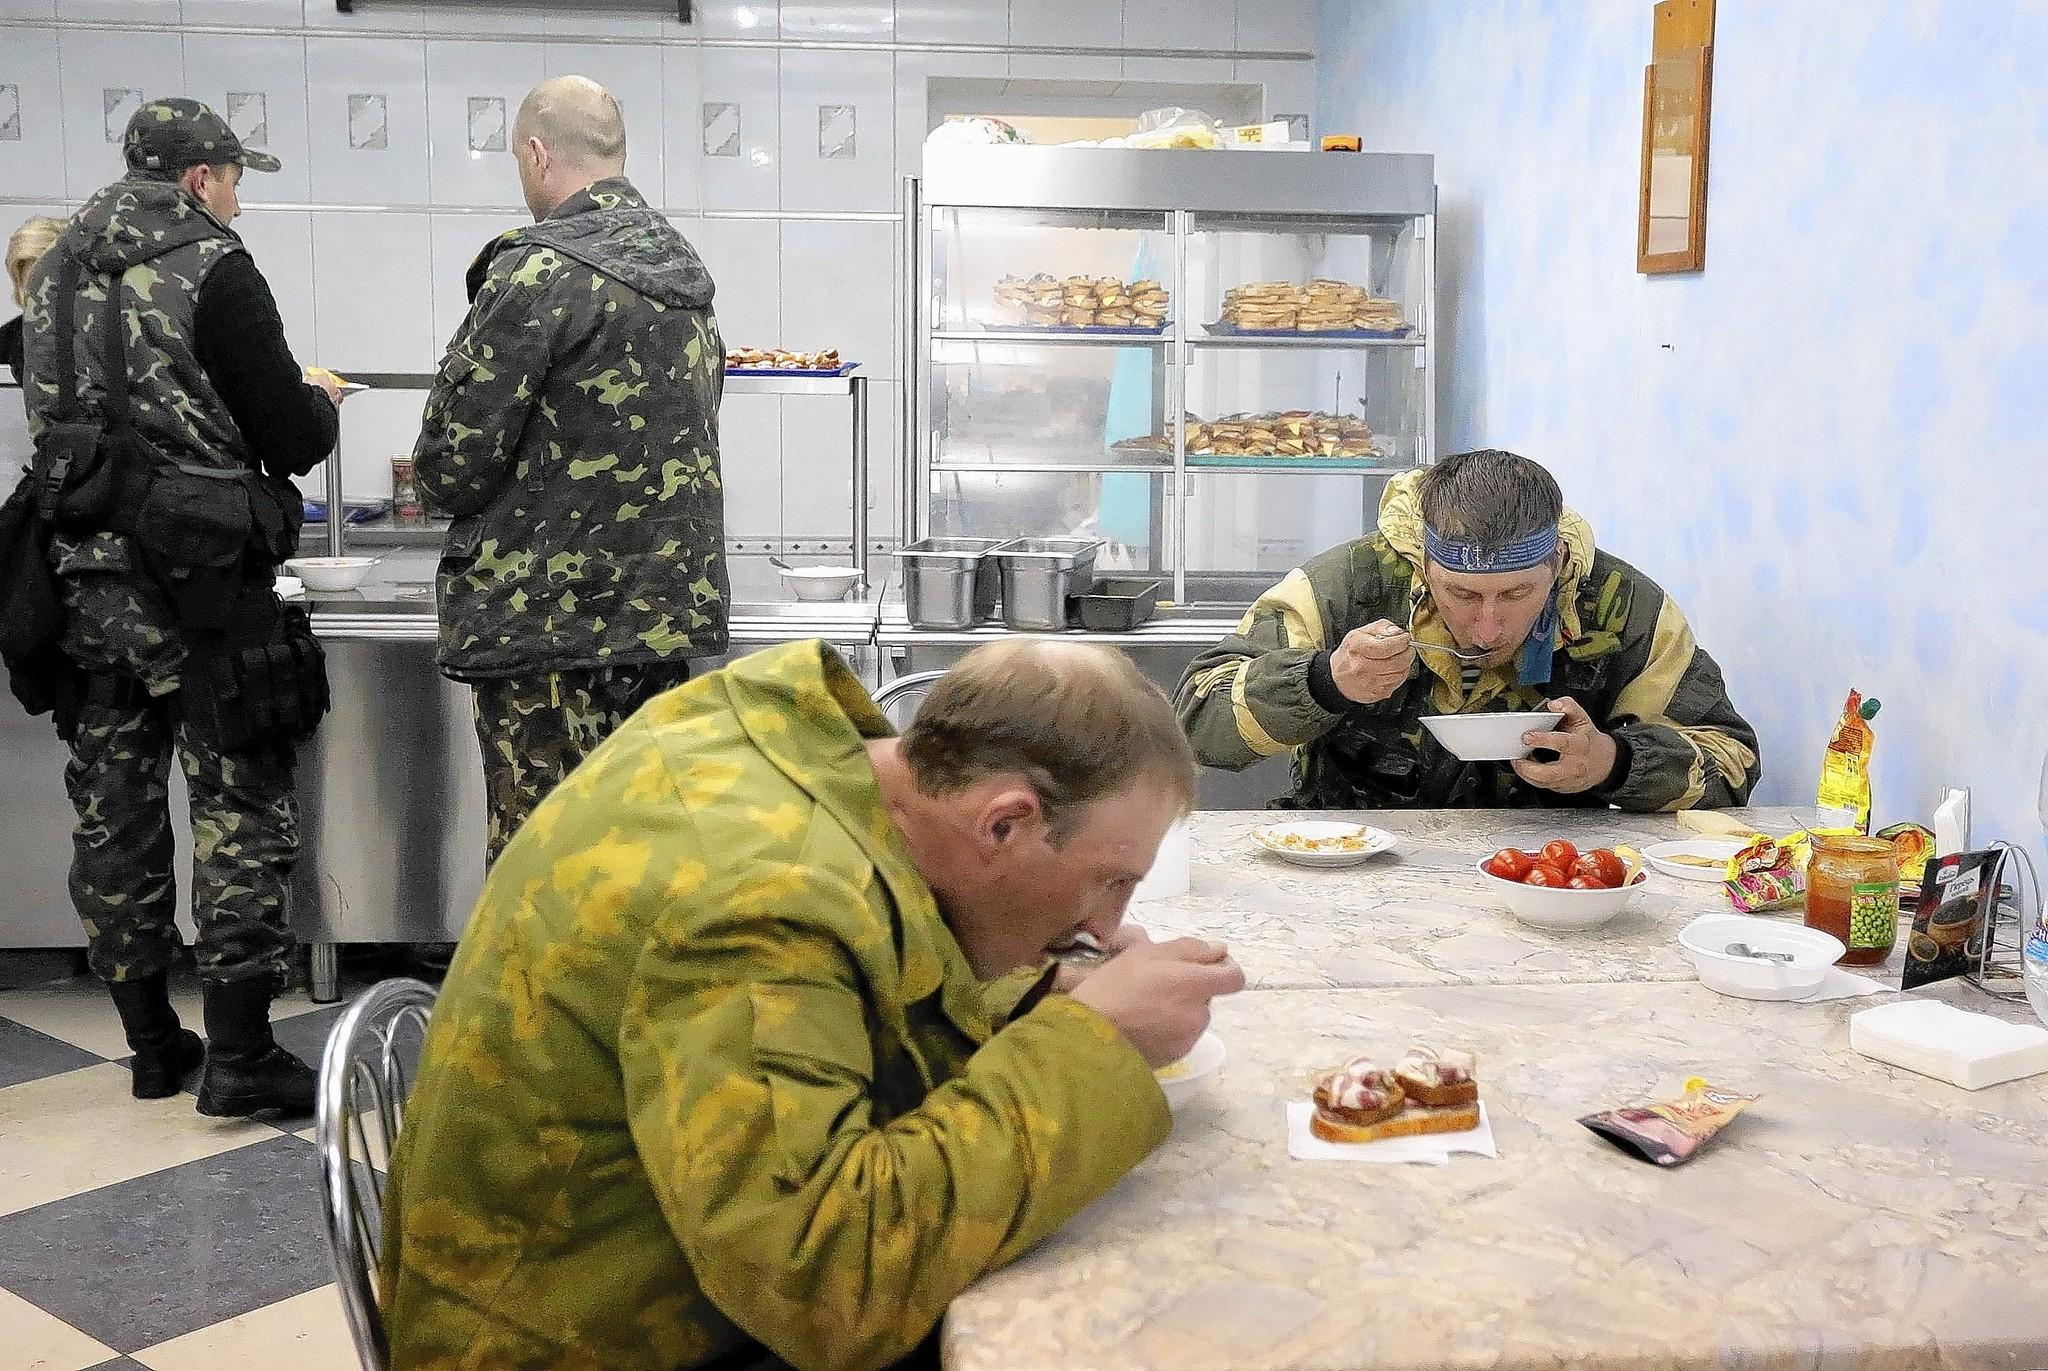 Pro-Russian protesters eat lunch in a cafeteria at the occupied security service building in Lugansk, Ukraine.